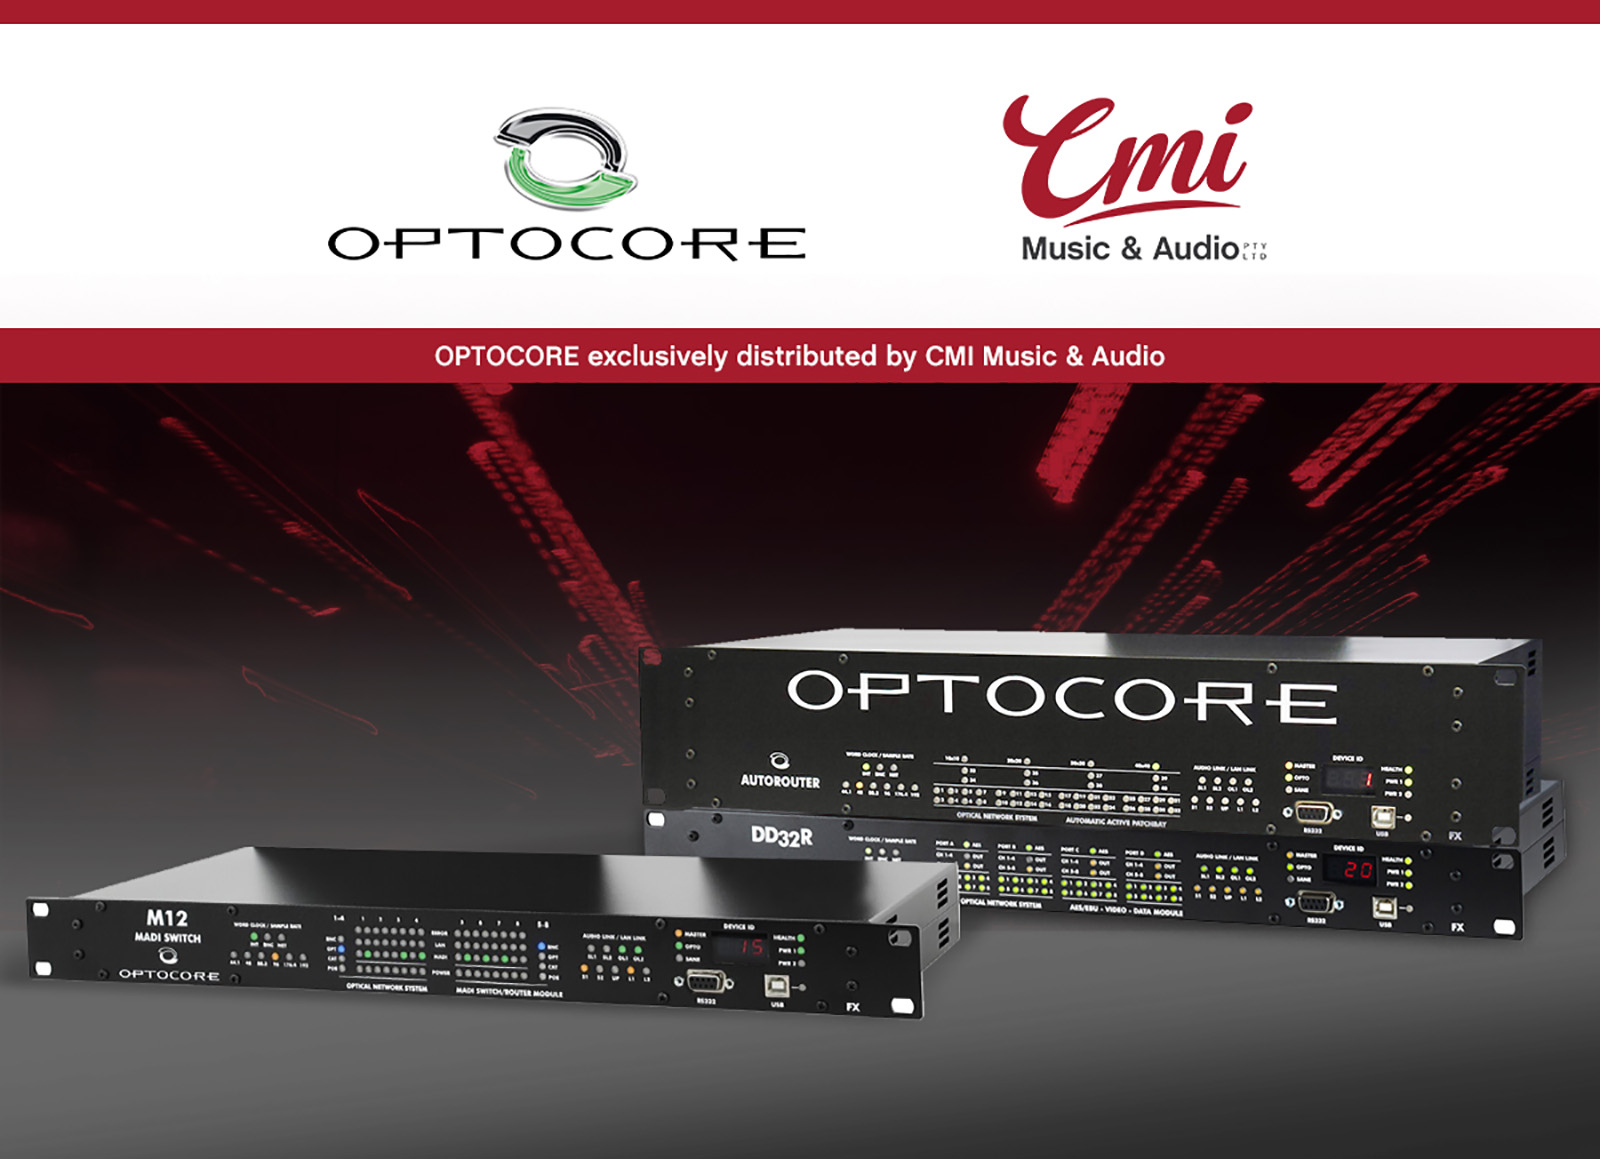 Optocore Exclusively Distributed by CMI Audio & Music